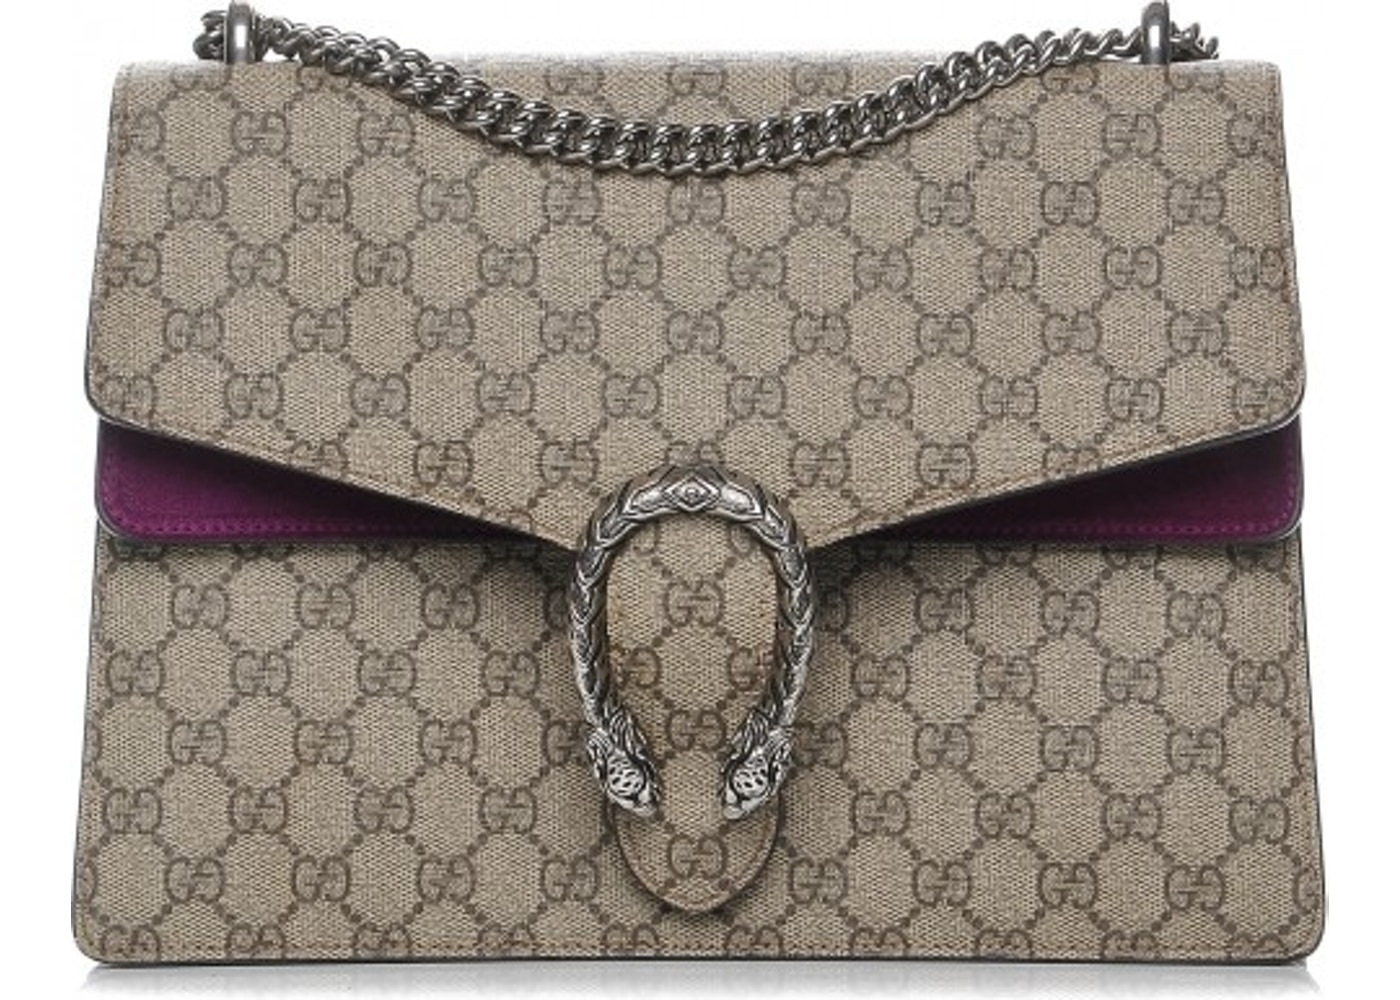 91b529ec3654a2 Gucci Dionysus Shoulder Bag Monogram GG Supreme Medium Brown/Beige/Purple. Monogram  GG Supreme Medium Brown/Beige/Purple